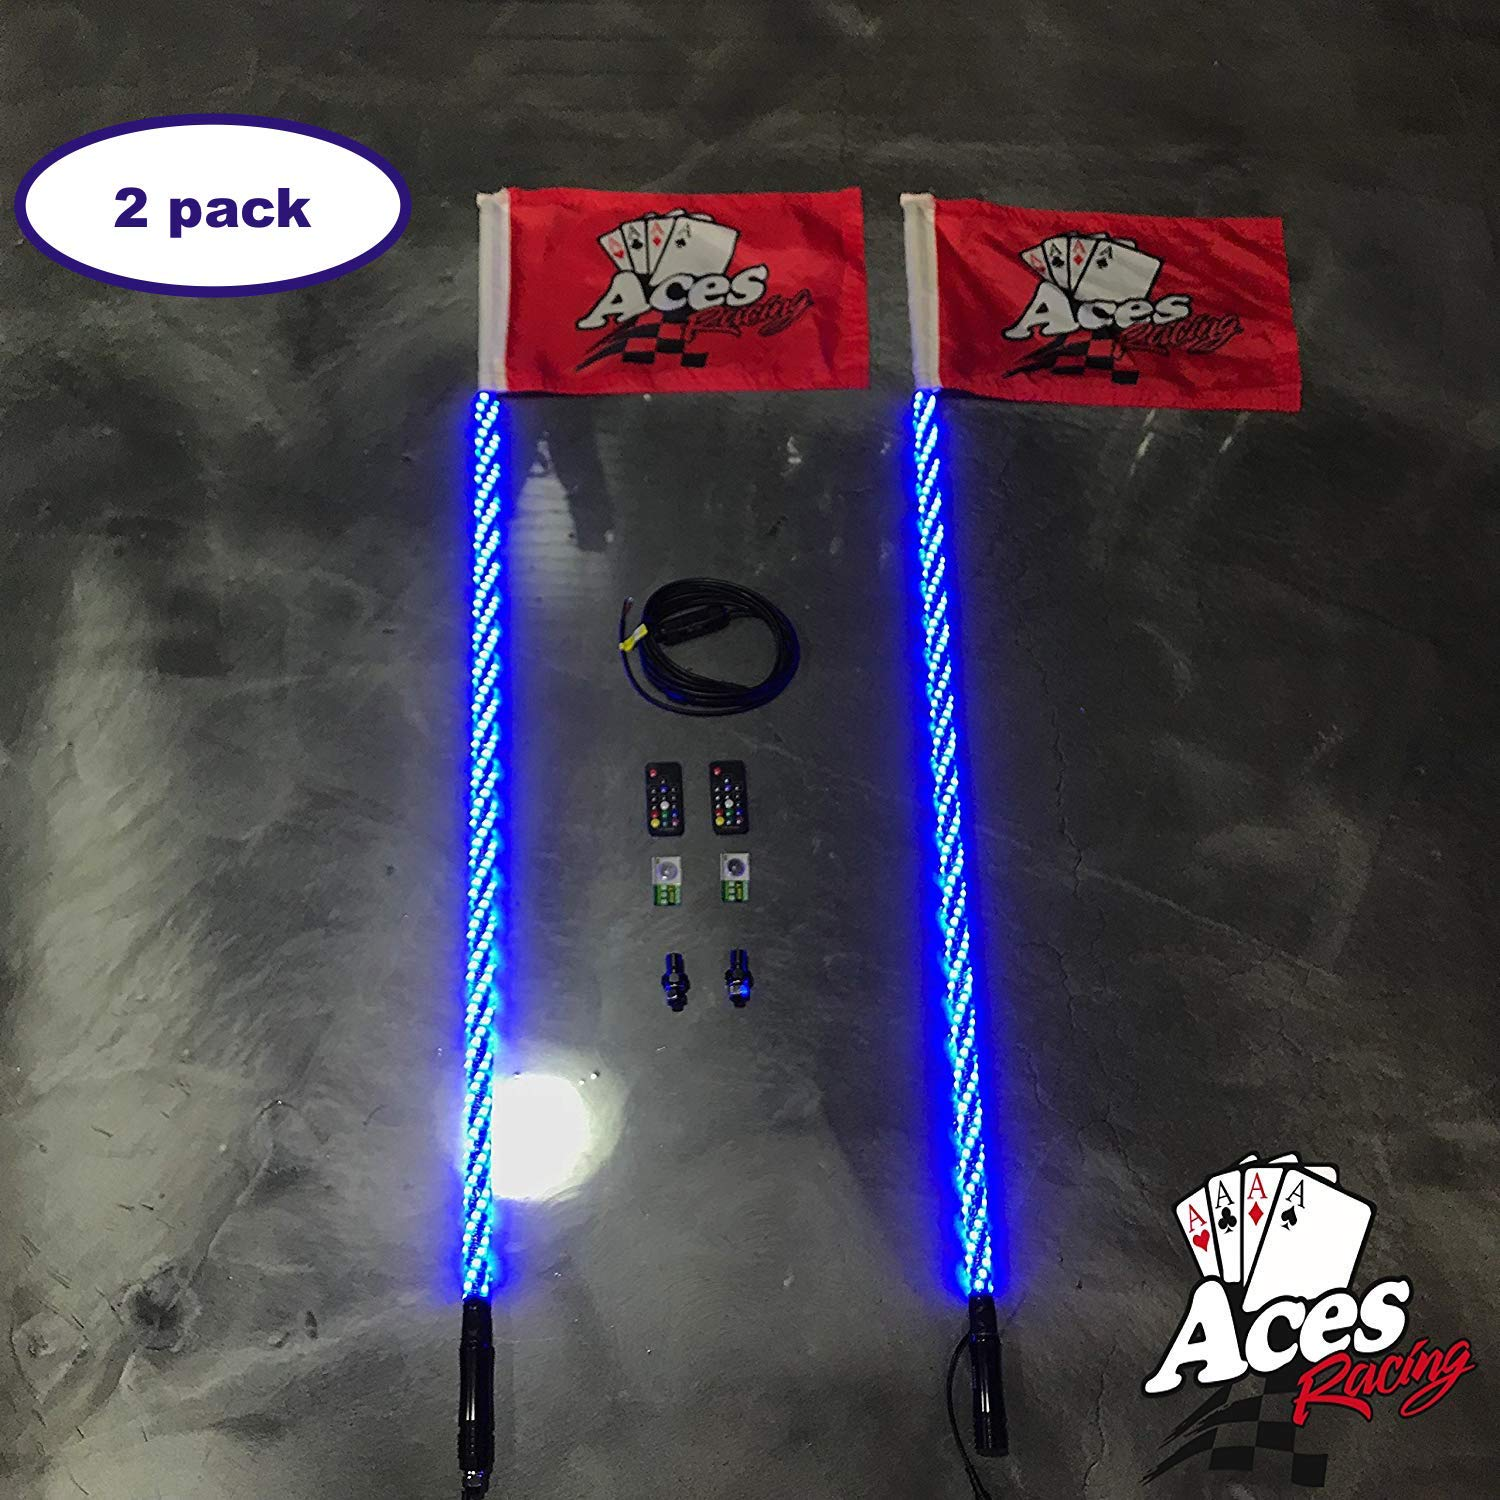 5 Foot Pair, 400 Combinations Deluxe Lighted Whips with Quick Connect and 1 Year Warranty